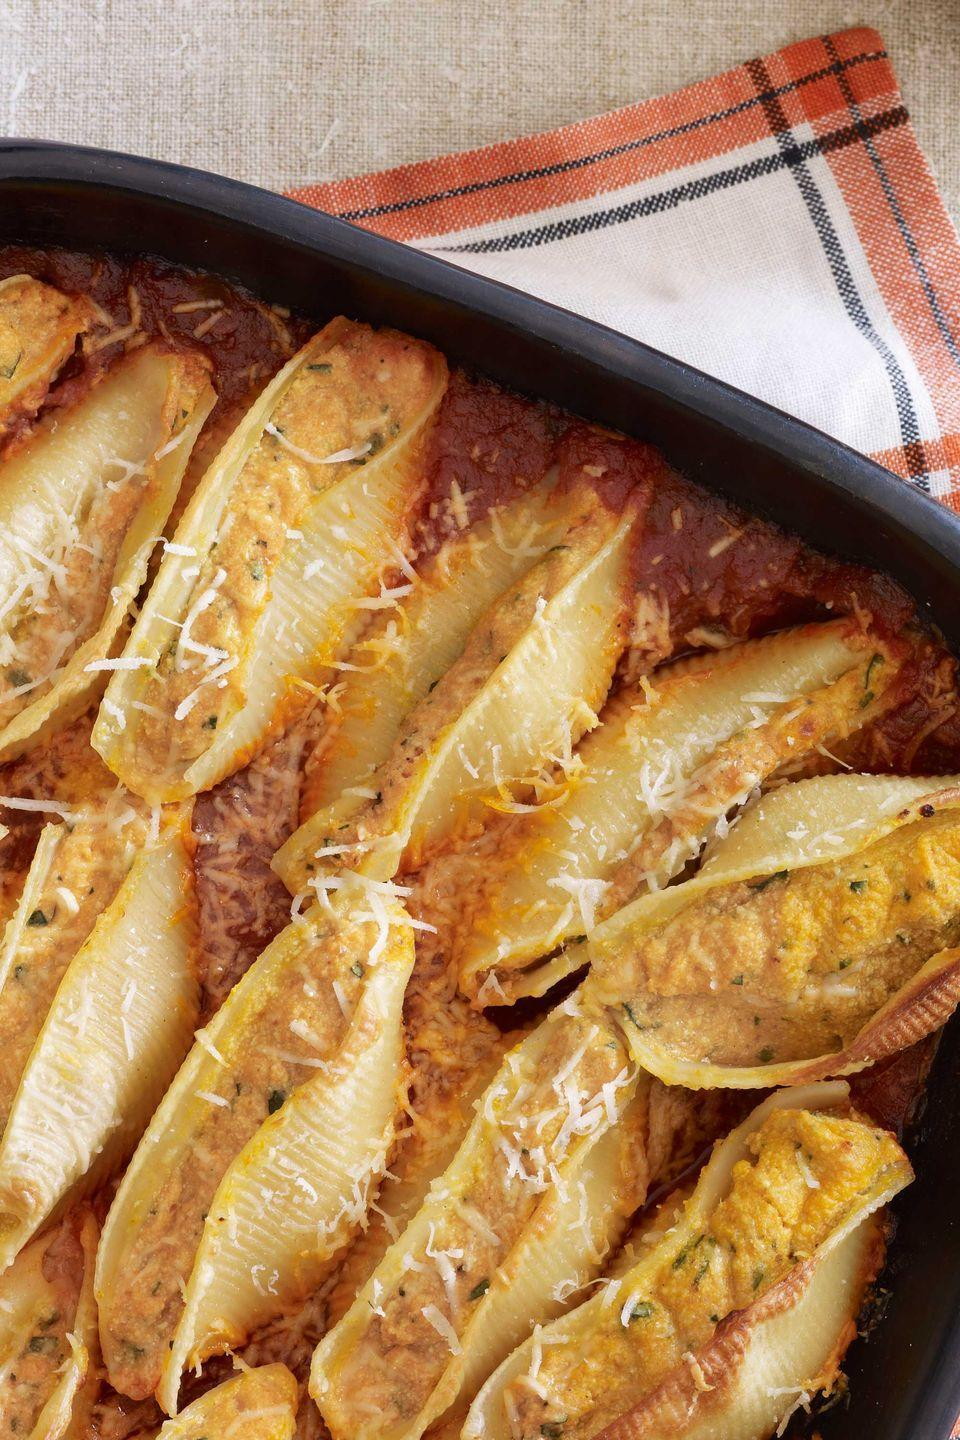 """<p>By incorporating pumpkin, this recipe requires less cheese than is typically used to stuff shells, but keeps all the delicious flavor.</p><p><strong><a href=""""https://www.countryliving.com/food-drinks/recipes/a3921/pumpkin-ricotta-stuffed-shells-recipe-clv1011/"""" rel=""""nofollow noopener"""" target=""""_blank"""" data-ylk=""""slk:Get the recipe"""" class=""""link rapid-noclick-resp"""">Get the recipe</a>.</strong><br></p><p><a class=""""link rapid-noclick-resp"""" href=""""https://www.amazon.com/Nordic-Ware-Natural-Aluminum-Commercial/dp/B0049C2S32/?tag=syn-yahoo-20&ascsubtag=%5Bartid%7C10050.g.619%5Bsrc%7Cyahoo-us"""" rel=""""nofollow noopener"""" target=""""_blank"""" data-ylk=""""slk:SHOP BAKING SHEETS"""">SHOP BAKING SHEETS</a></p>"""